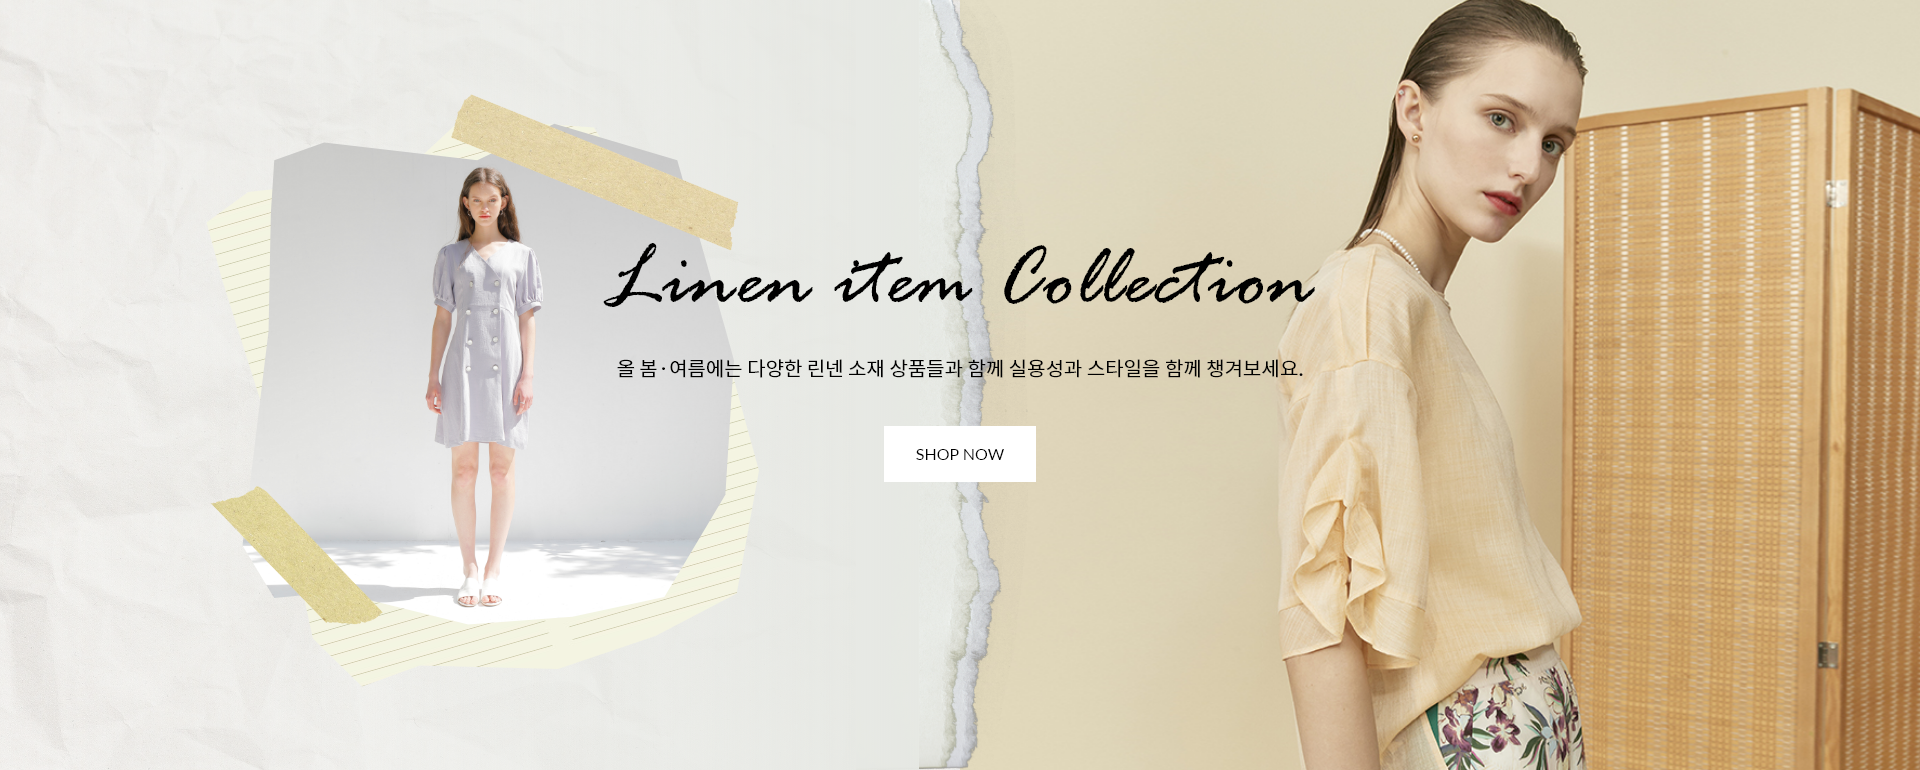 LINEN ITEM COLLECTION0